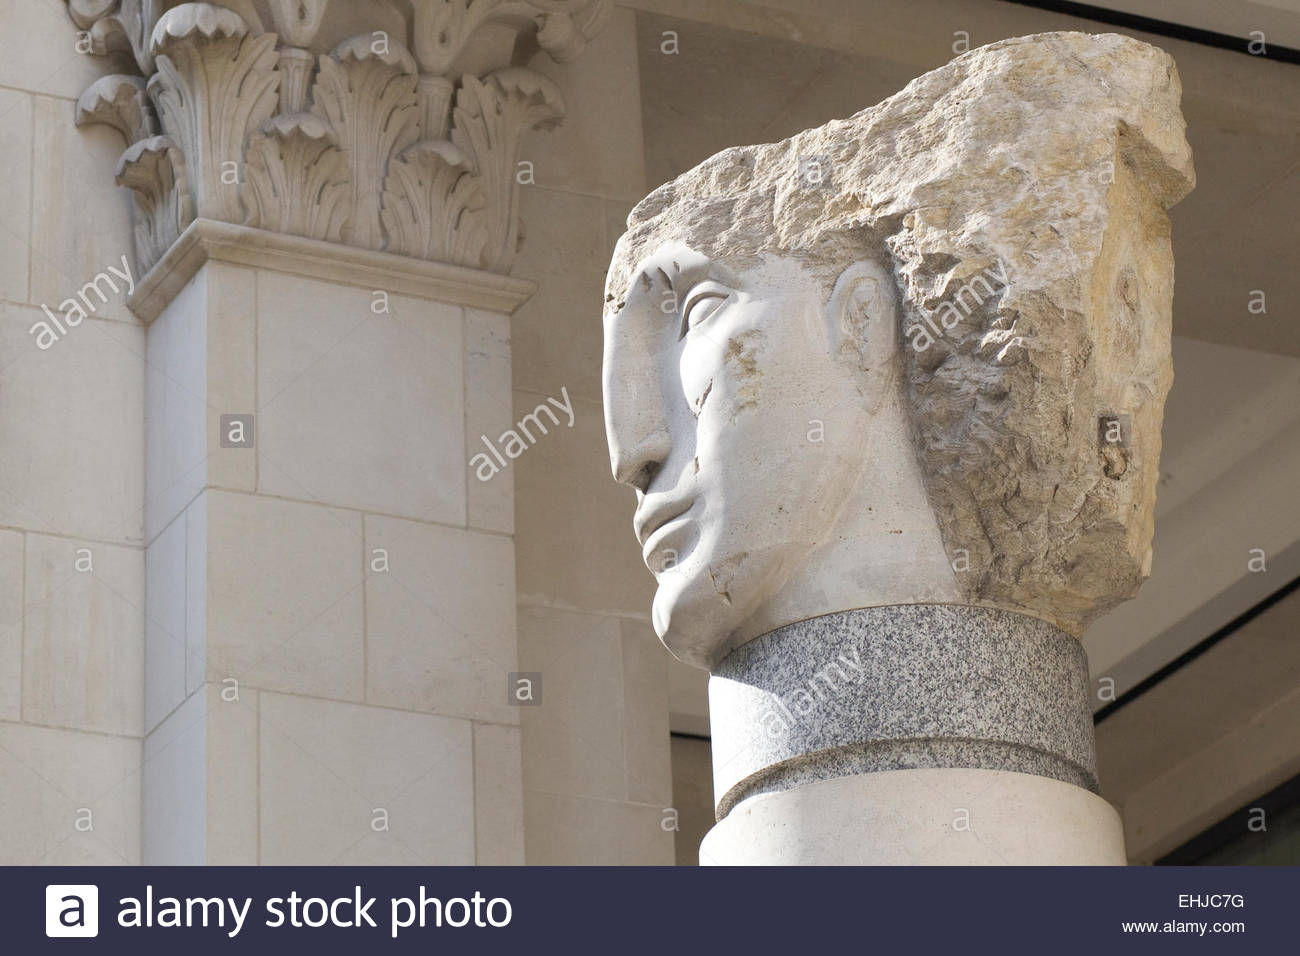 Stone head sculpture near St Paul's Cathedral London - Stock Image